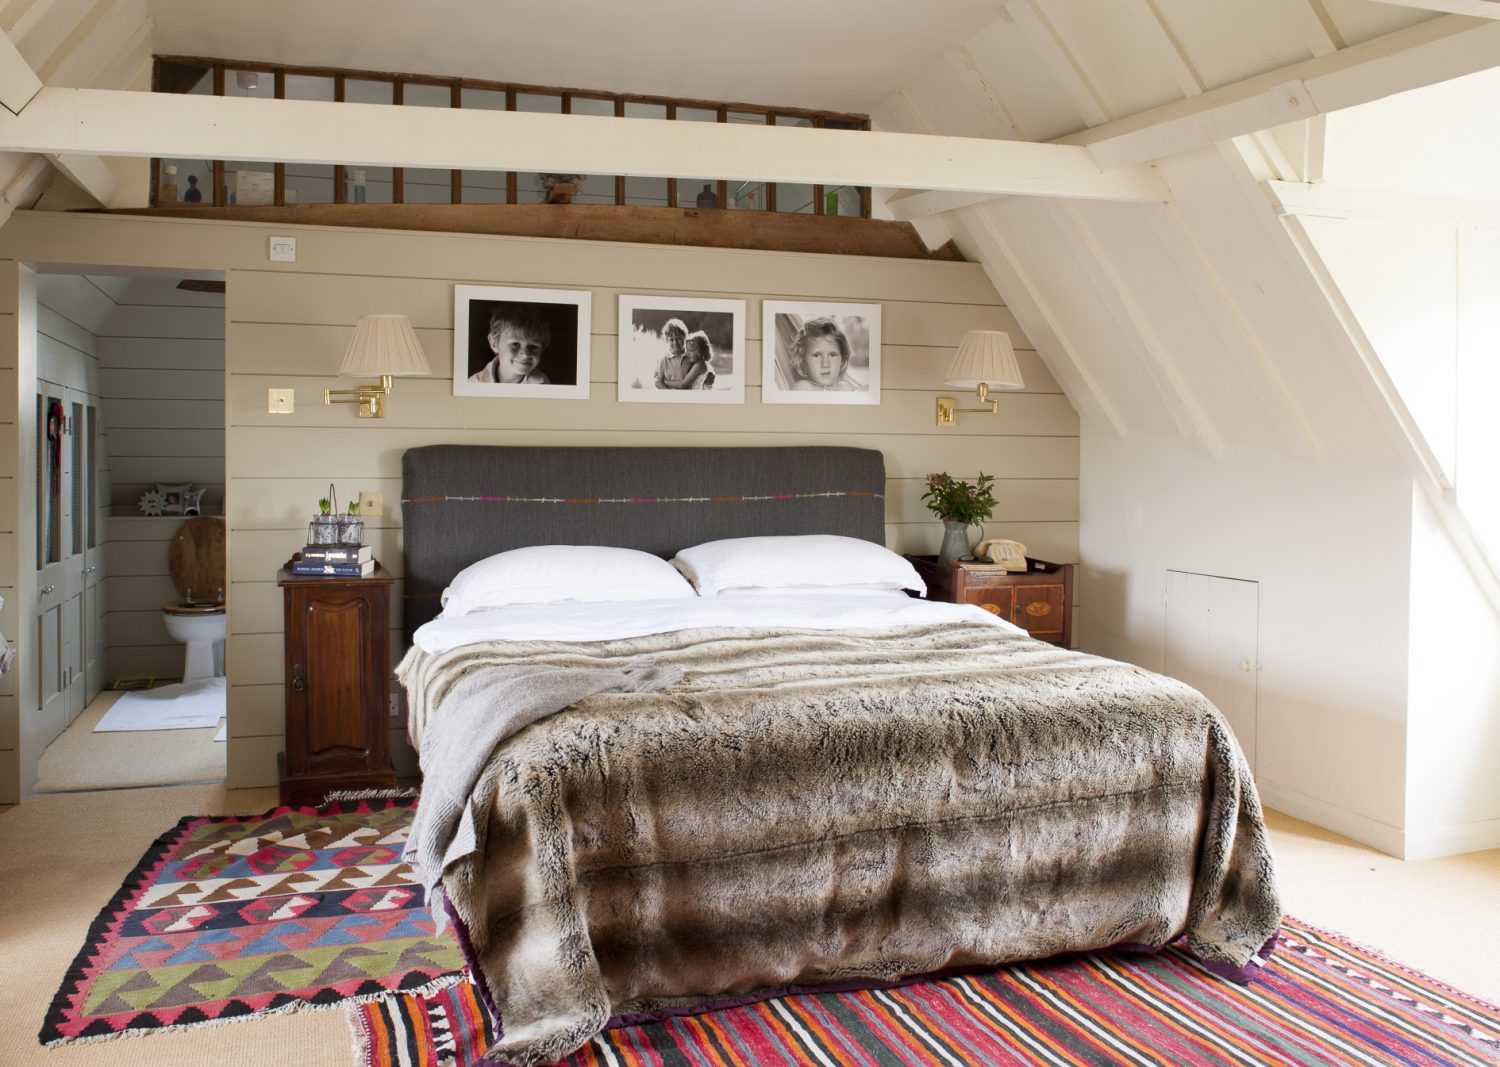 The master 'suite' on the top floor comprises master bedroom with en suite, and dressing room